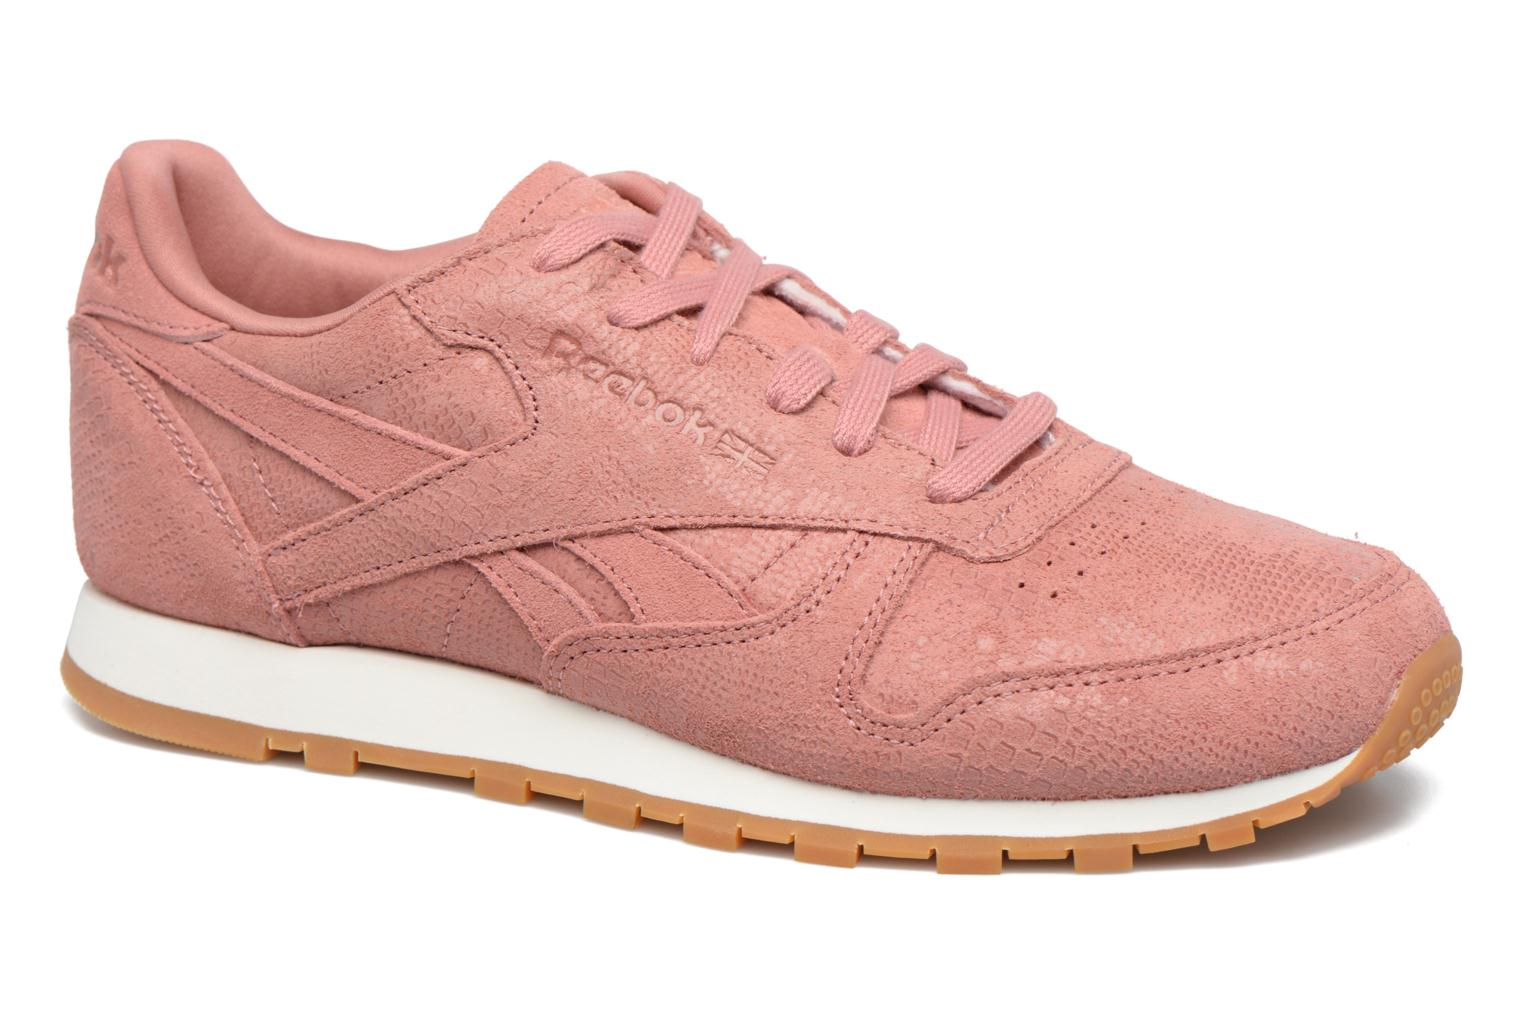 Cl Lthr Clean Exoti Sandy Rose/Chalk/Gum